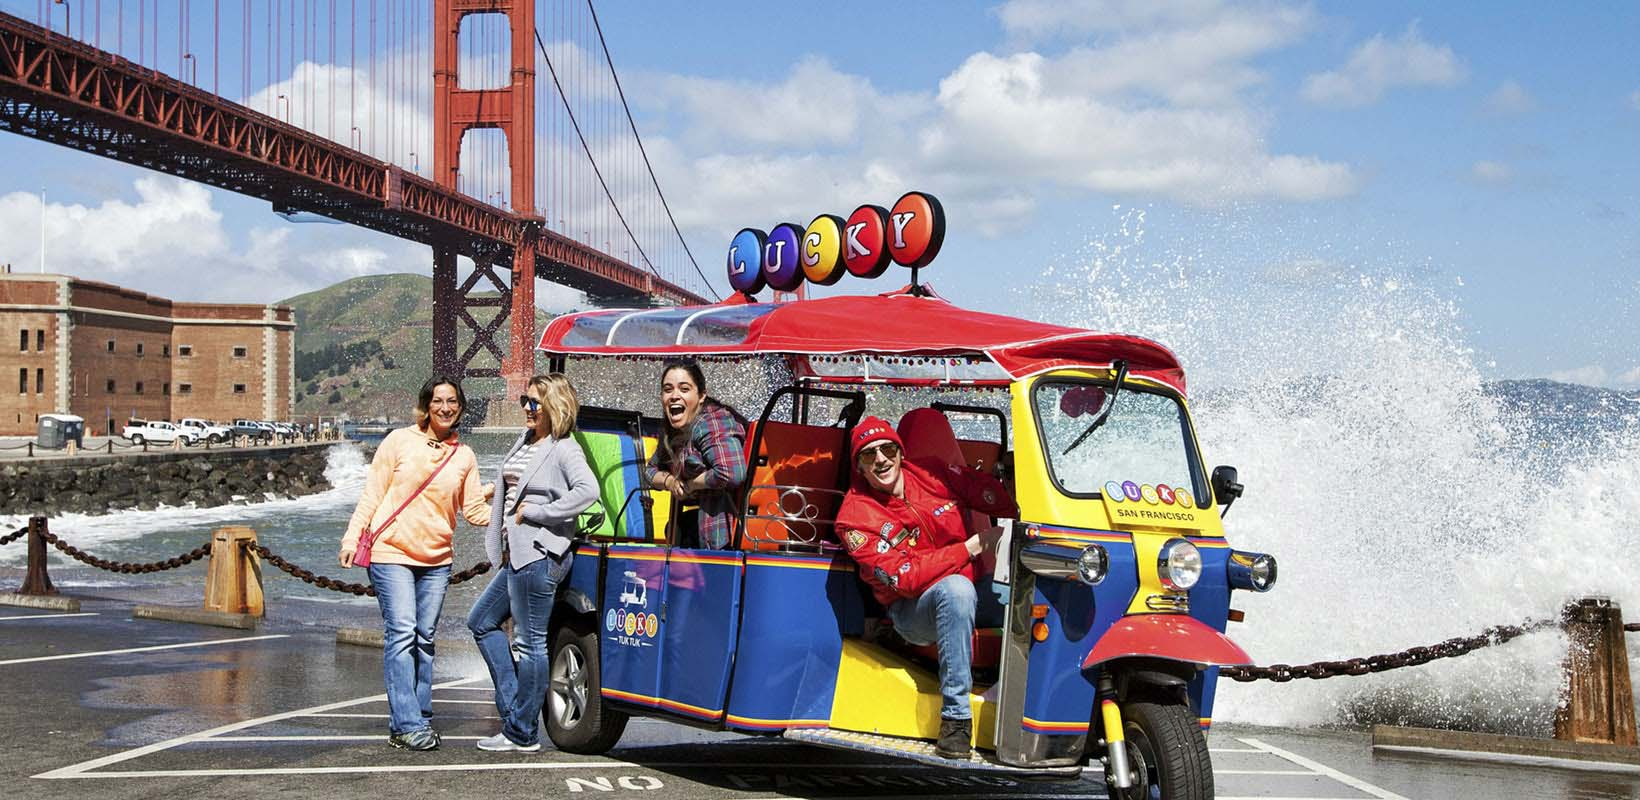 Tuk Tuk San Francisco City Tour